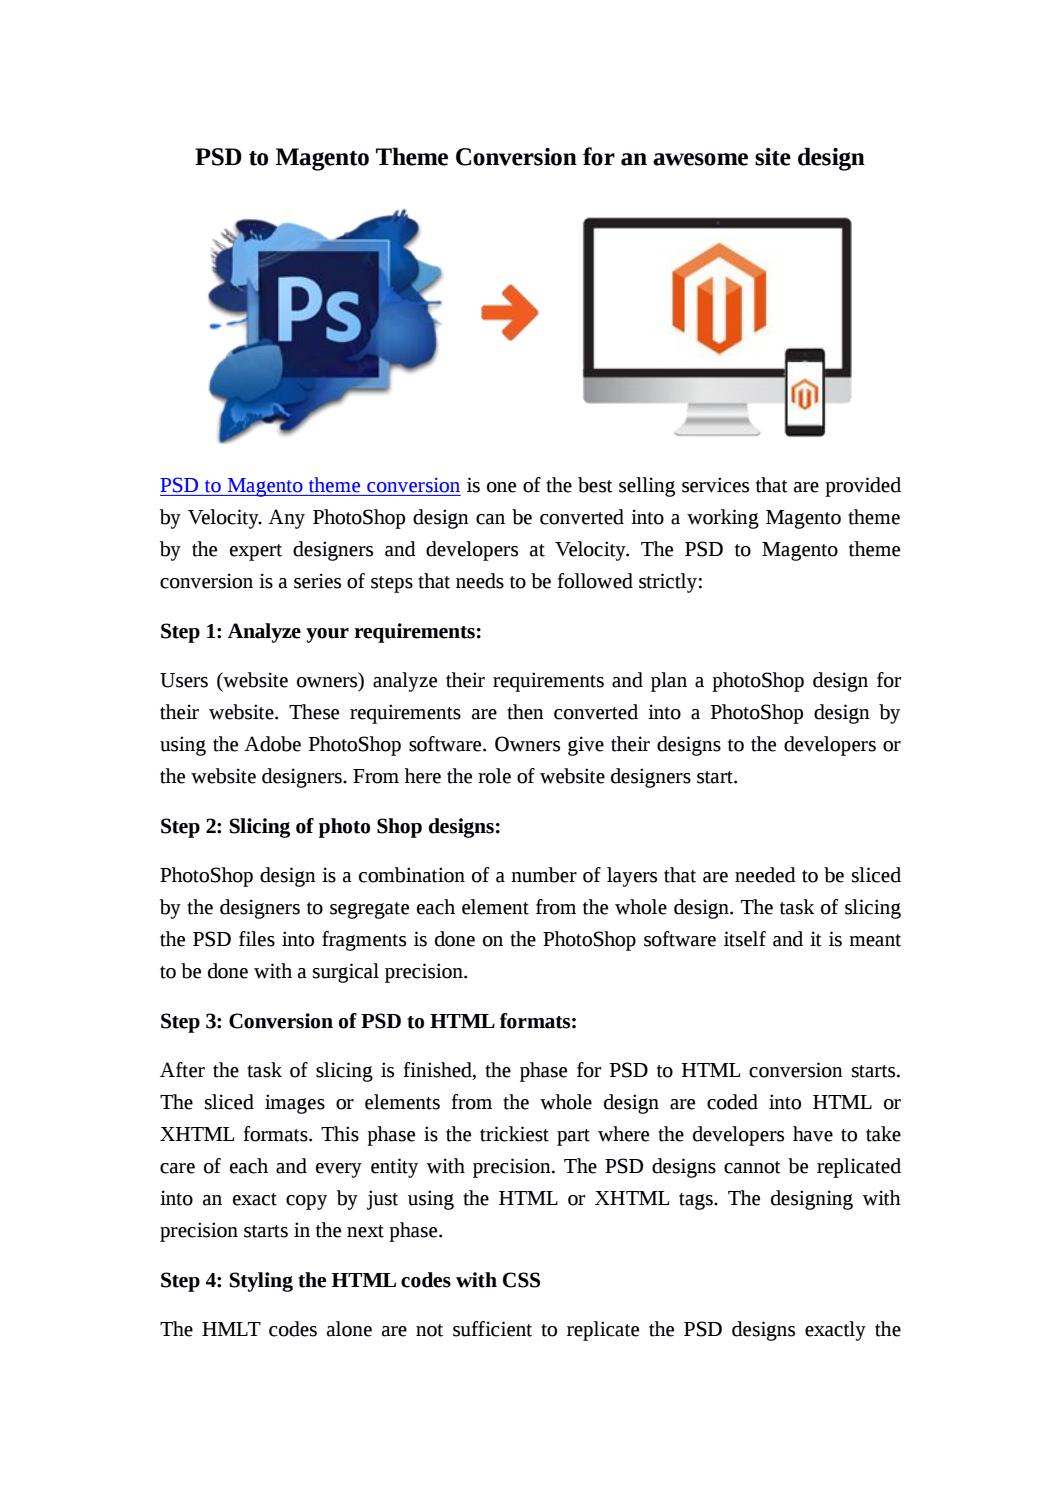 PSD to Magento Theme Conversion for an awesome site design